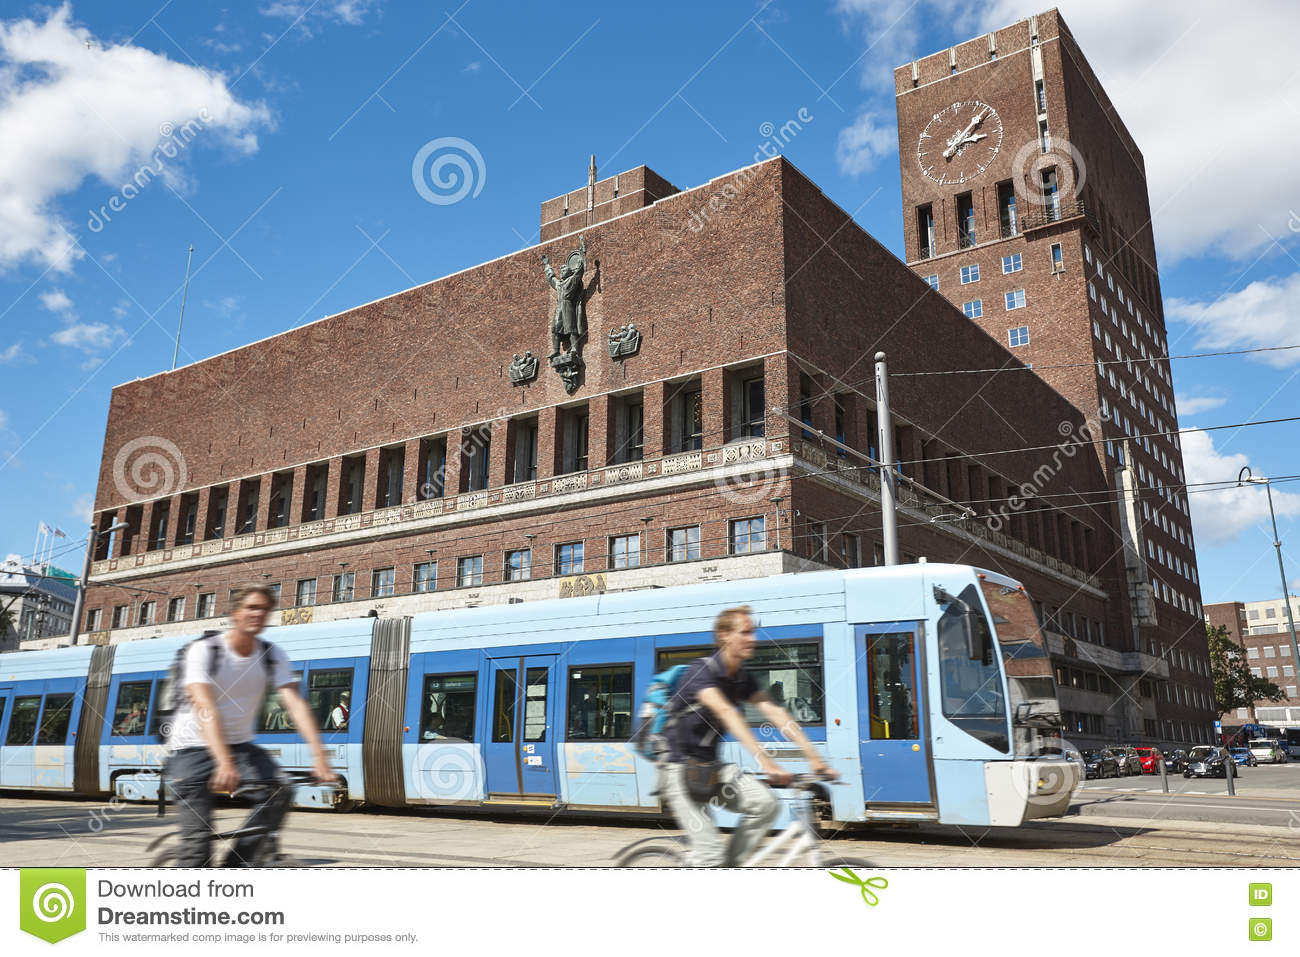 Oslo City Center With Town Hall, Tramway And Bikes. Norway